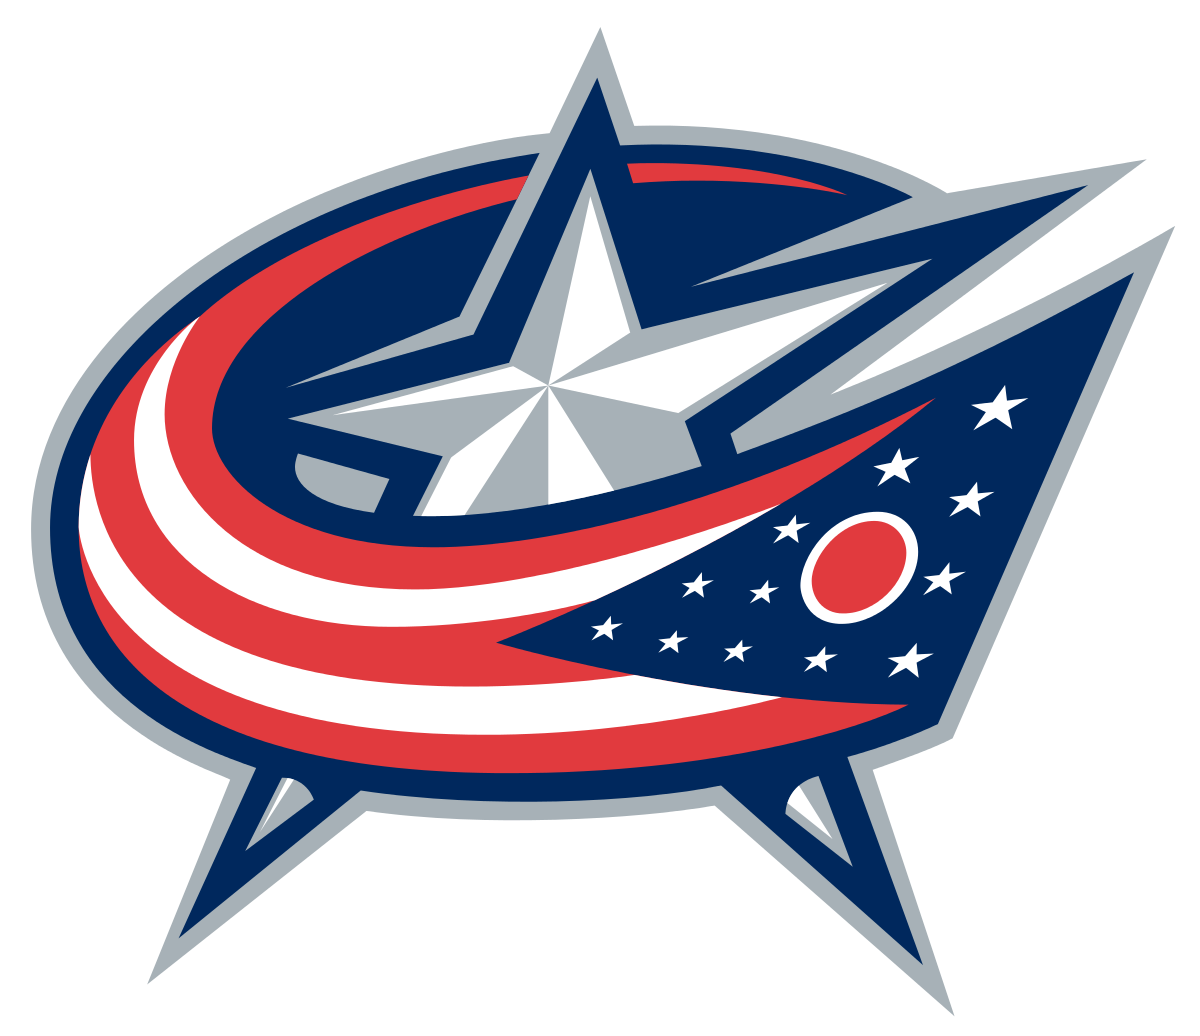 Programme TV Columbus Blue Jackets